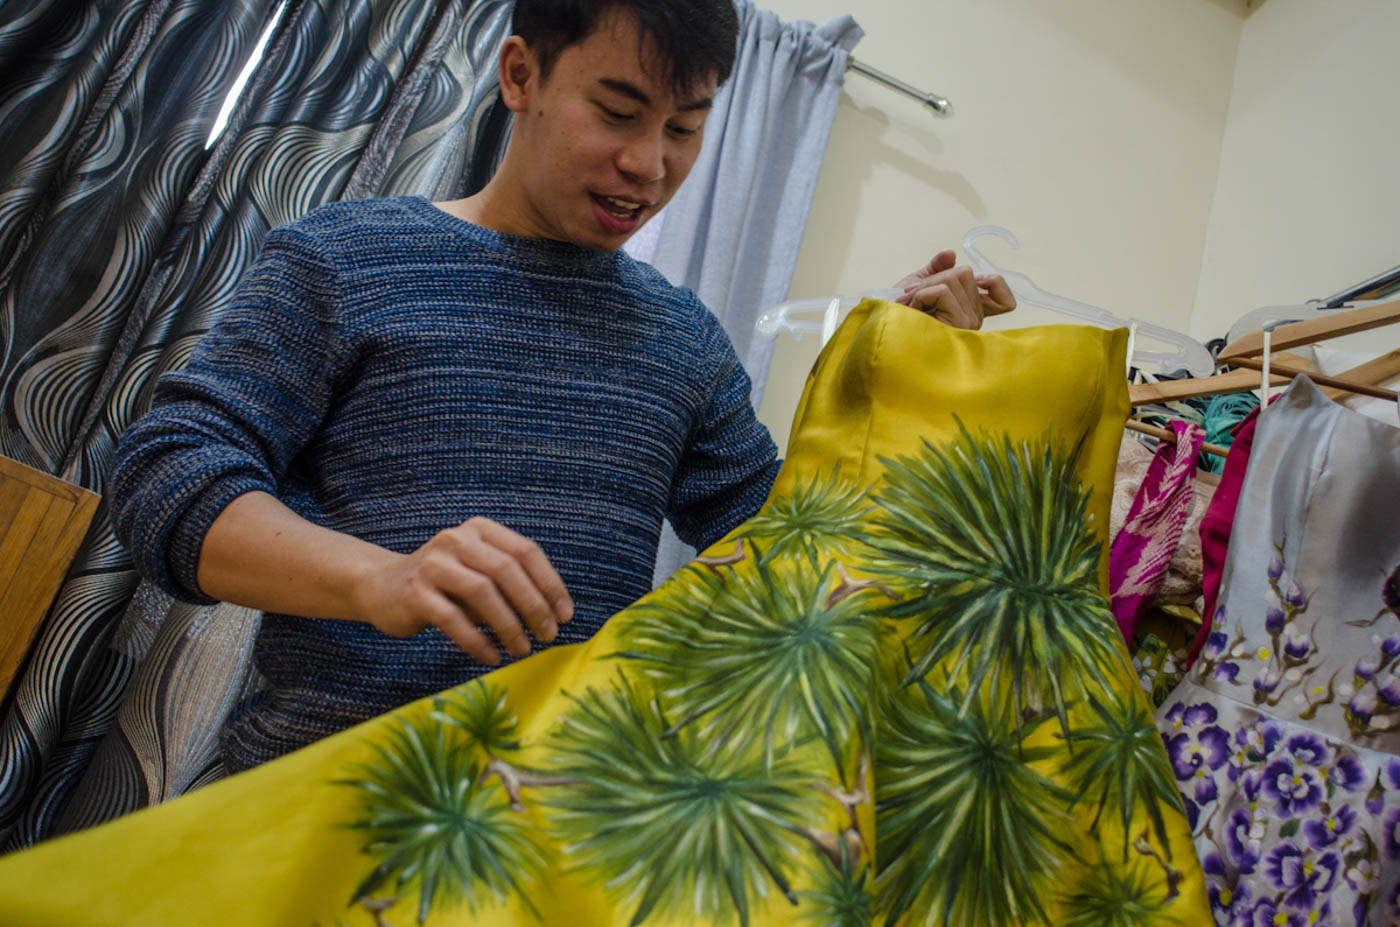 STANDOUT. Jearson holds the dress Catriona wore during one of the rehearsals for Miss Universe.